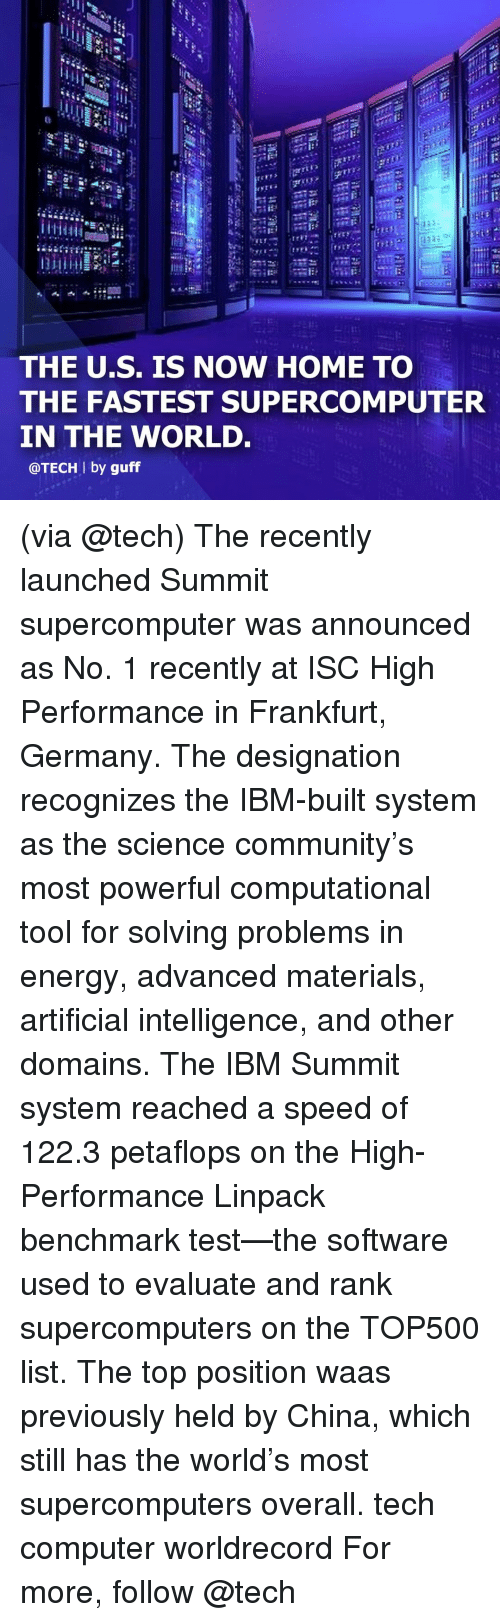 ibm: Ct  ri:  THE U.S. IS NOW HOME TO  THE FASTEST SUPERCOMPUTER  IN THE WORLD.  @TECH l by guff (via @tech) The recently launched Summit supercomputer was announced as No. 1 recently at ISC High Performance in Frankfurt, Germany. The designation recognizes the IBM-built system as the science community's most powerful computational tool for solving problems in energy, advanced materials, artificial intelligence, and other domains. The IBM Summit system reached a speed of 122.3 petaflops on the High-Performance Linpack benchmark test—the software used to evaluate and rank supercomputers on the TOP500 list. The top position waas previously held by China, which still has the world's most supercomputers overall. tech computer worldrecord For more, follow @tech